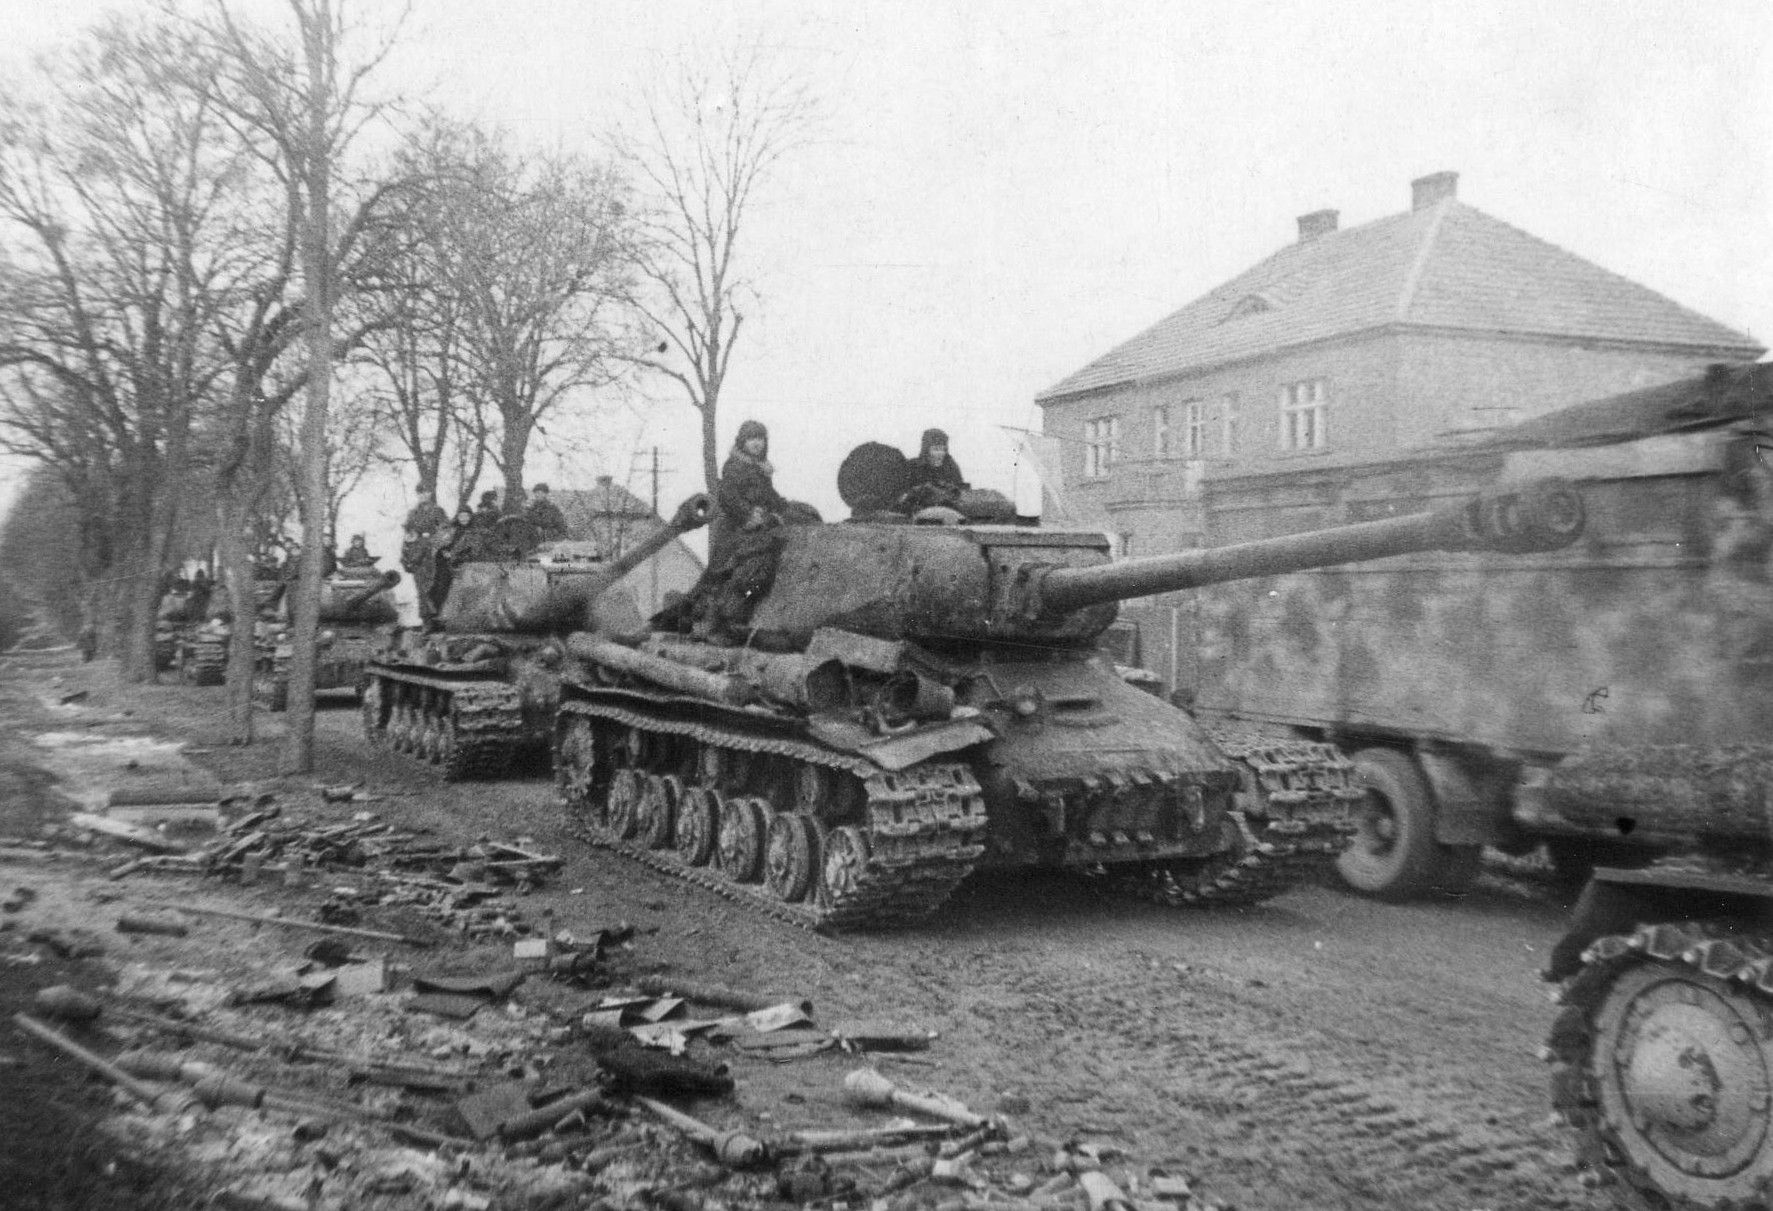 Heavy Soviet armor belonging to 1st Belorussian Front rolls into East Prussia, Feb 1945. Note the panerfaust (German bazooka) littering the side of the road.